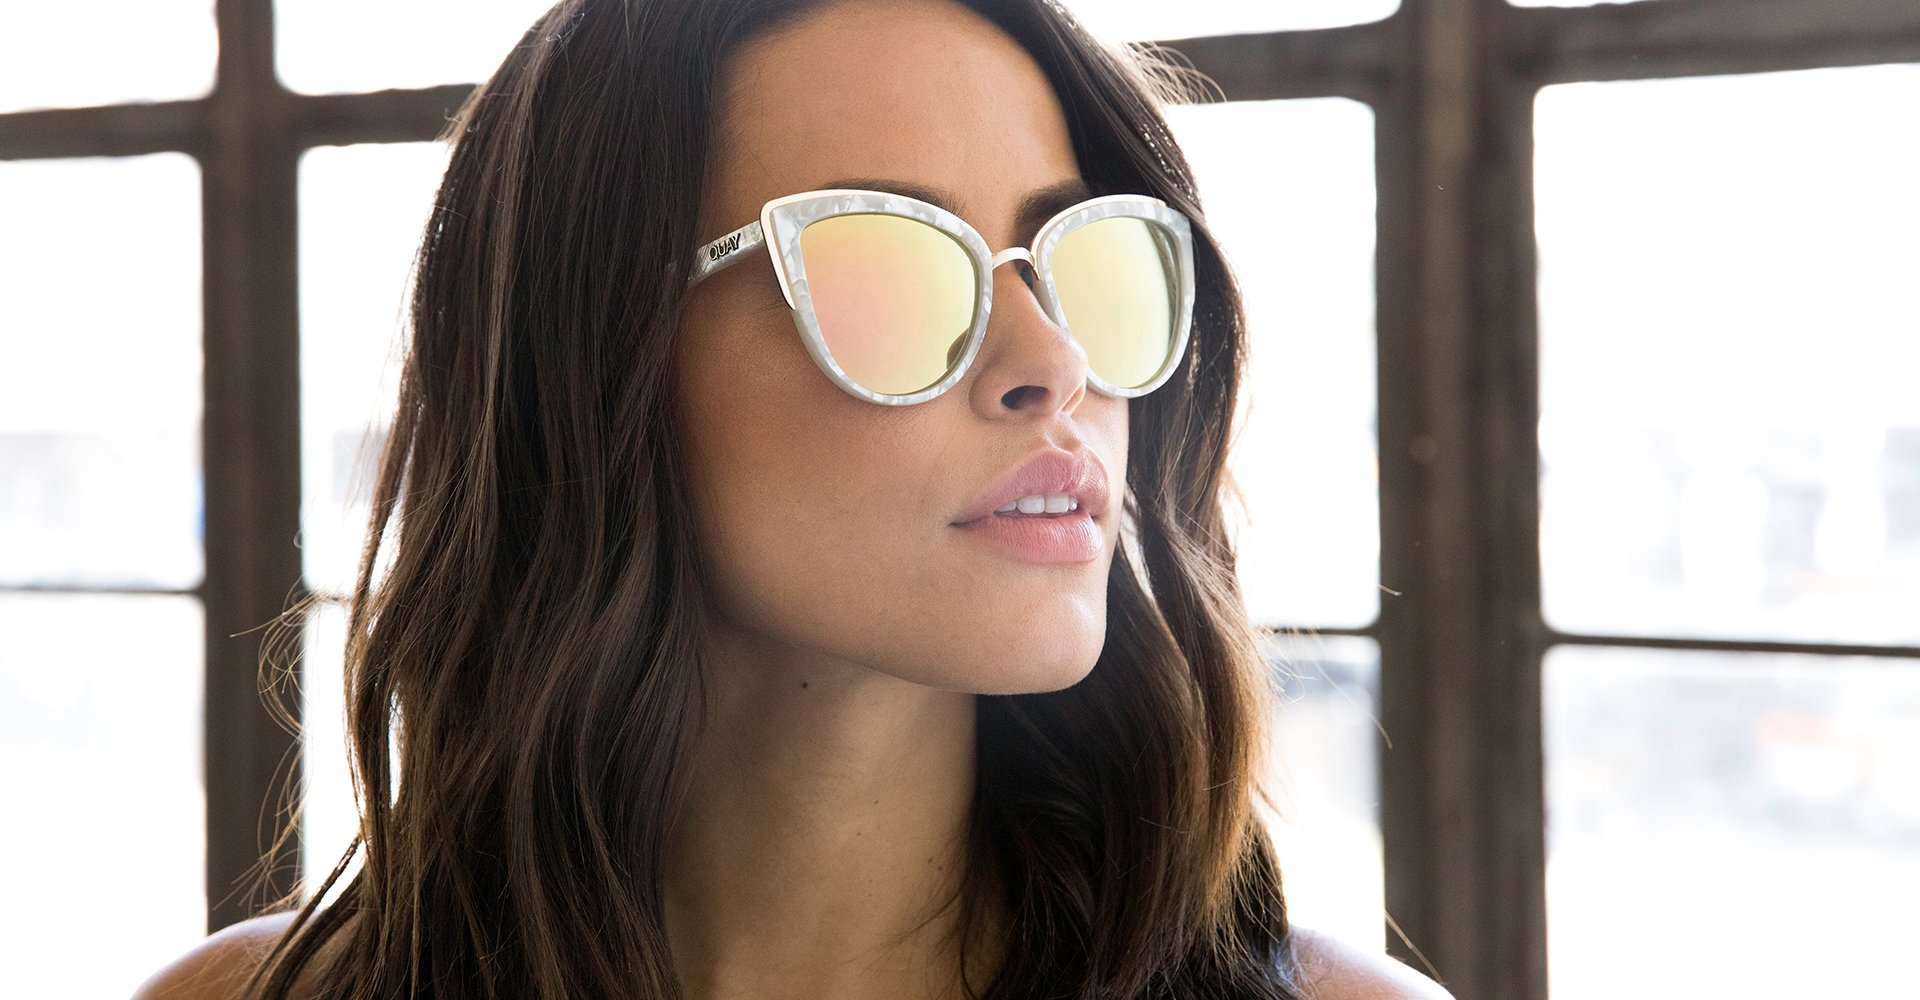 Image of a woman by a window wearing Quay Sunglasses